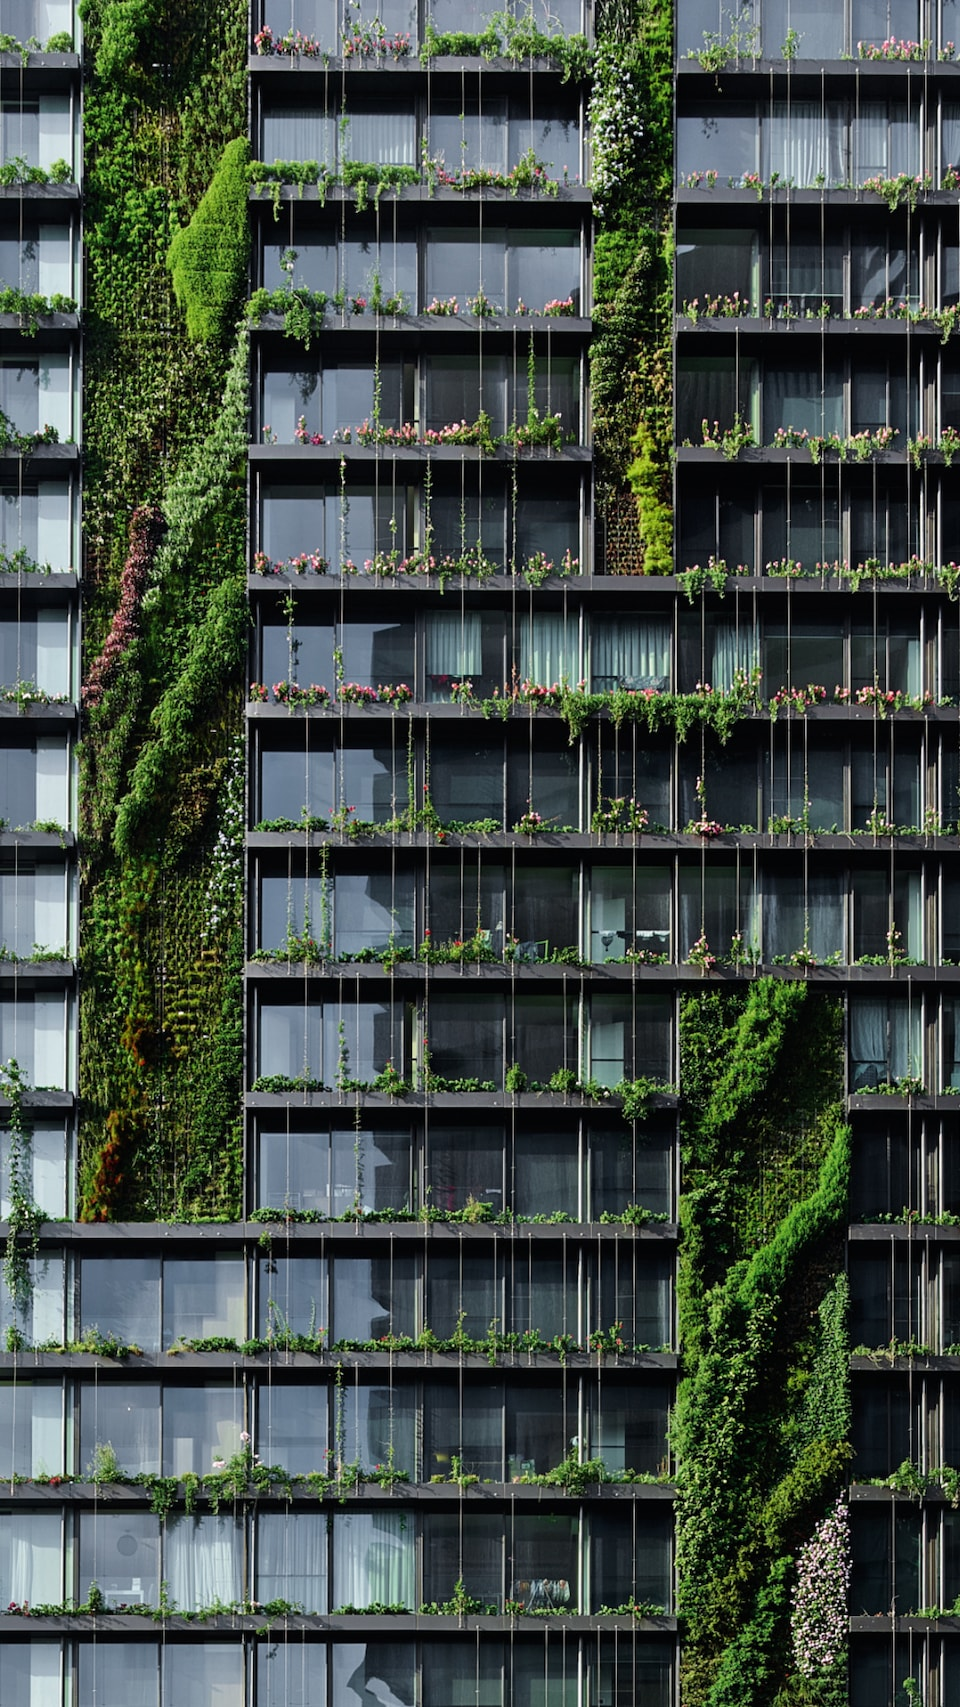 The One Central Park project in Sydney is a paradigm for green buildings. In total, more than 85,000 plants cover the 23 green cloaks of vegetation that stretch up to 50 meters high on the façade.